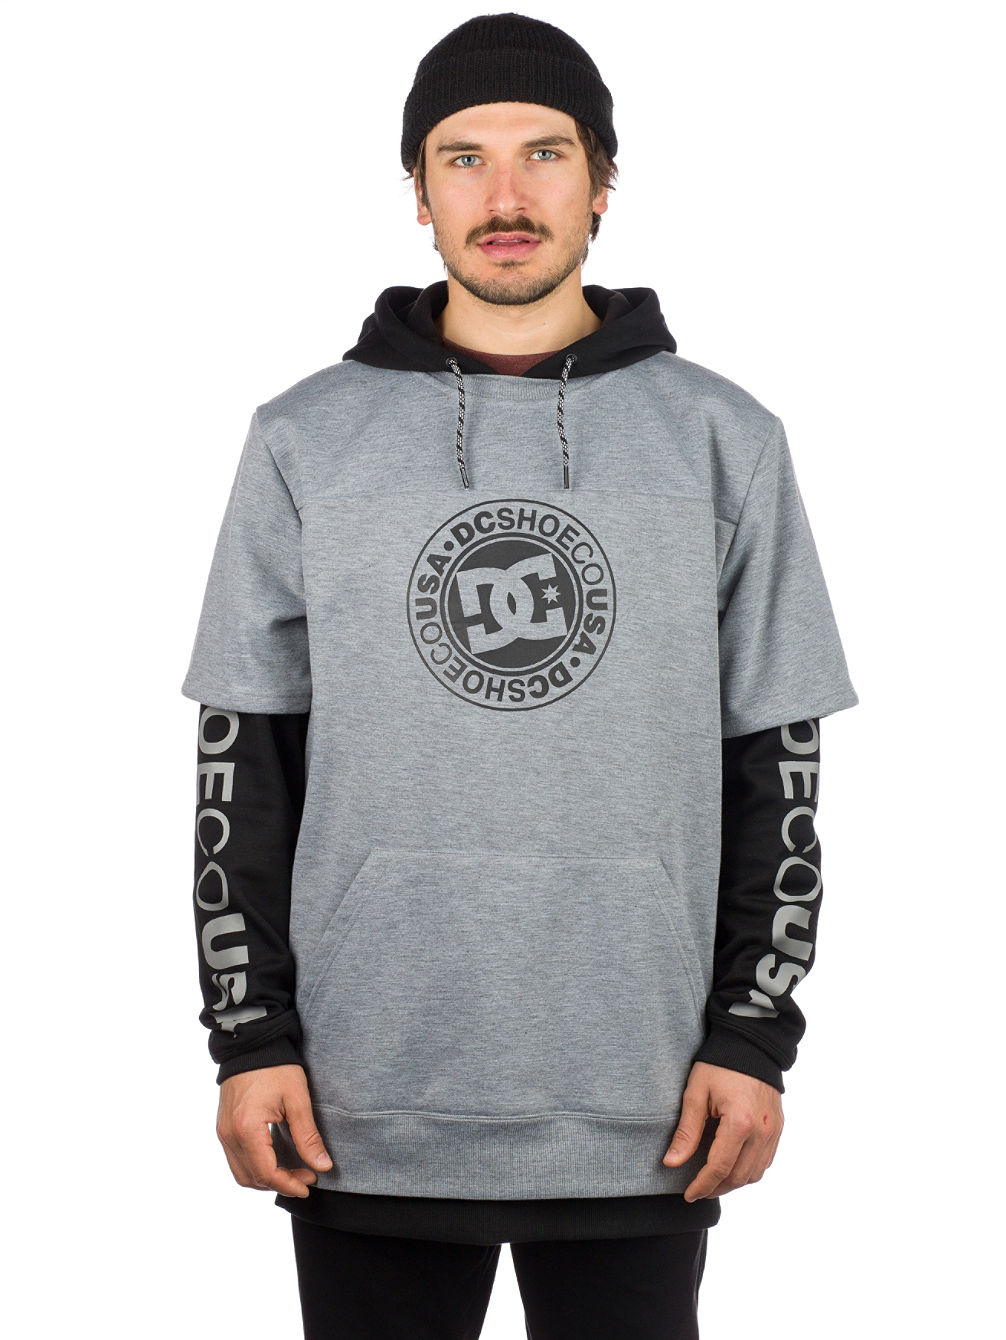 Dryden Shred Hoodie